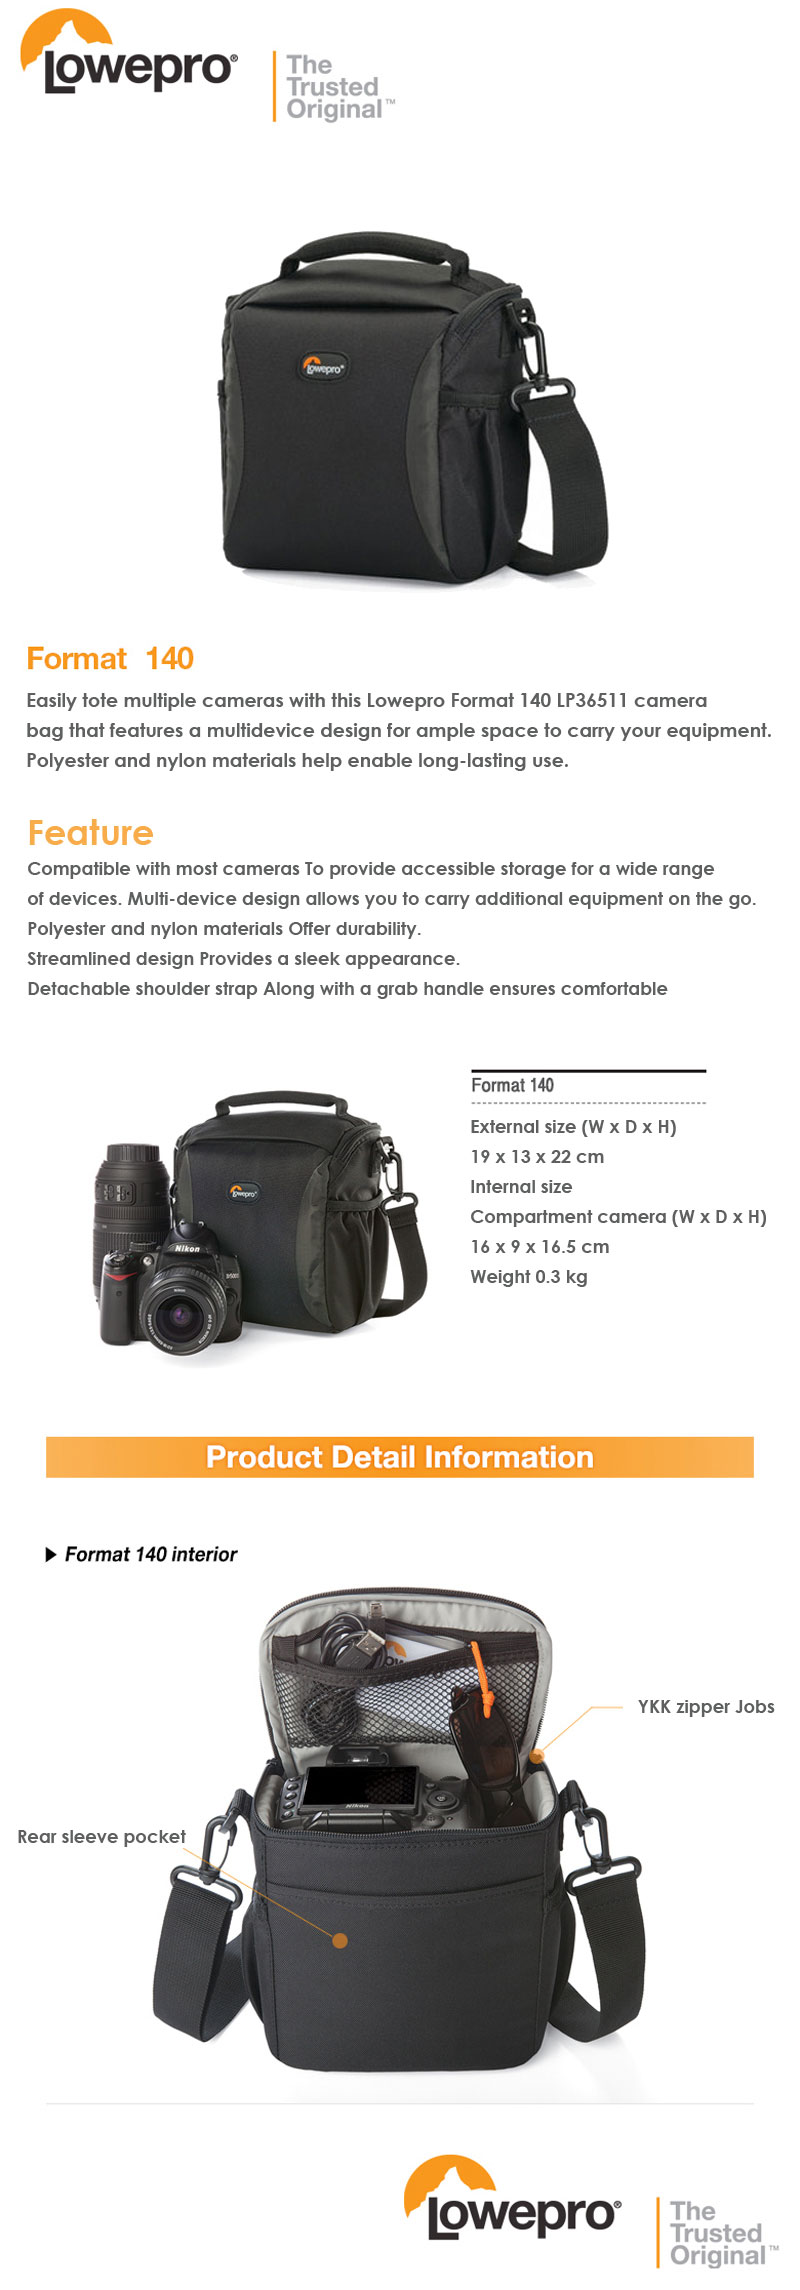 Every Need Want Day Lowepro Format 140 Camera Bag Adjustable Shoulder Strap Streamline Design Provide Superior Protection Carry Bags